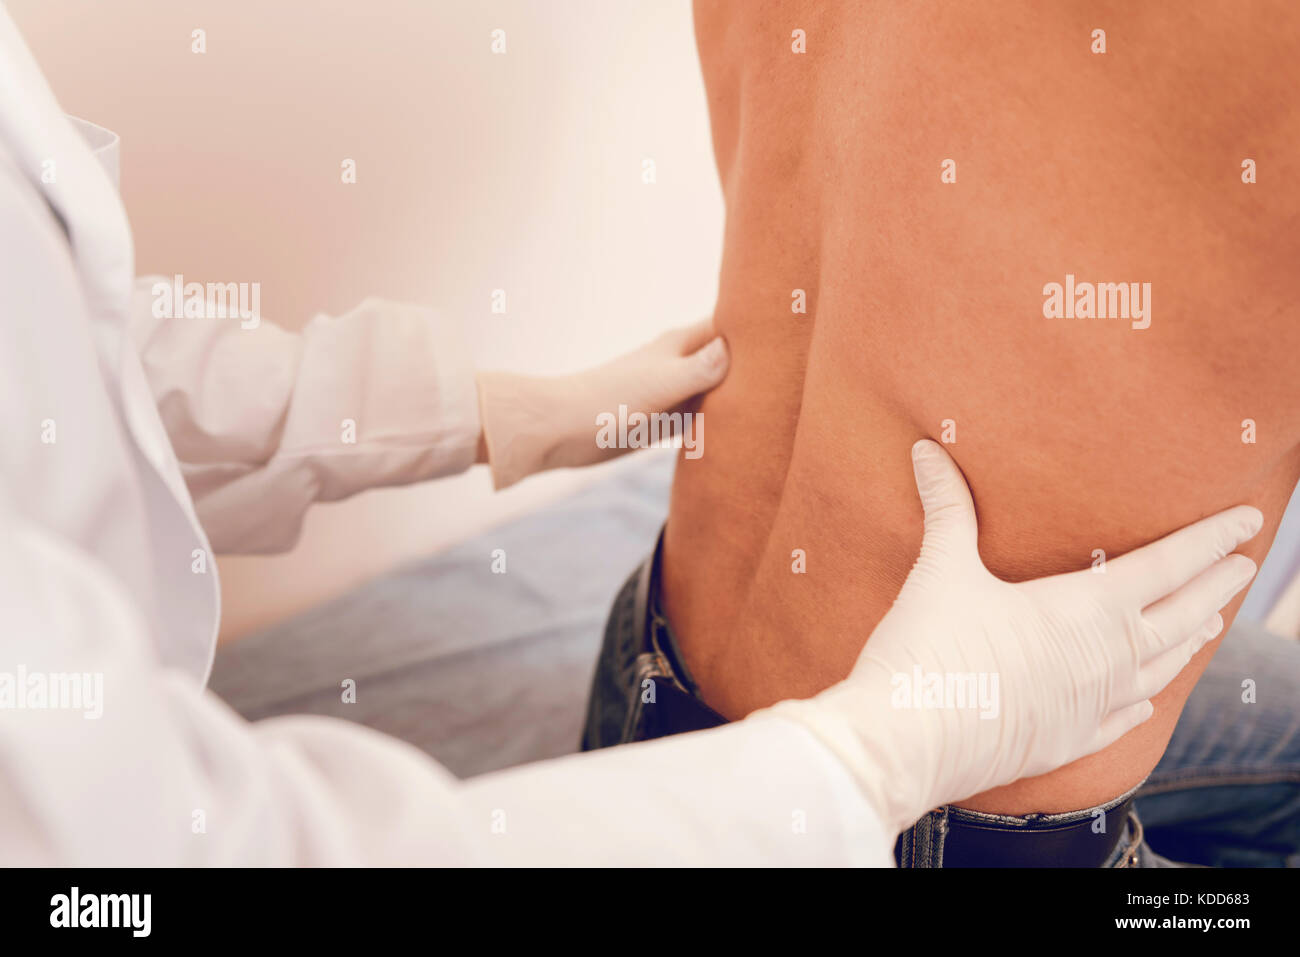 Competent doctor putting hands on male body - Stock Image